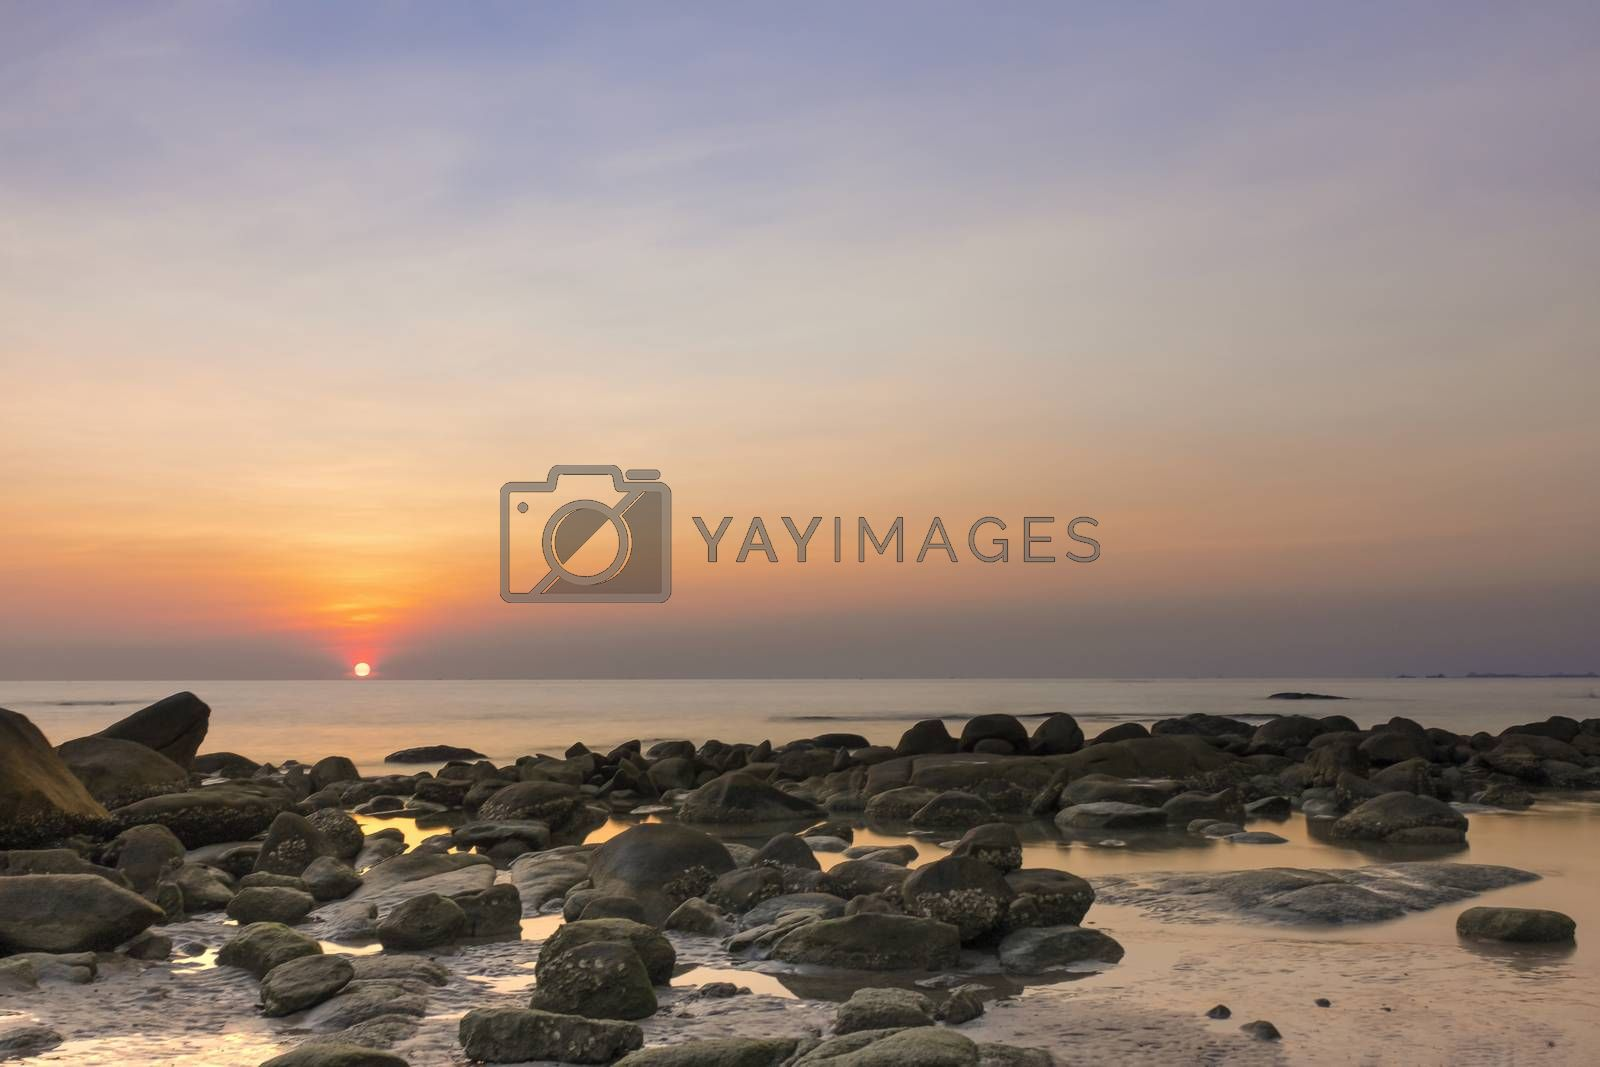 Moment of sunsetting with gloden sphere of light just touching the sea level in the horizon.